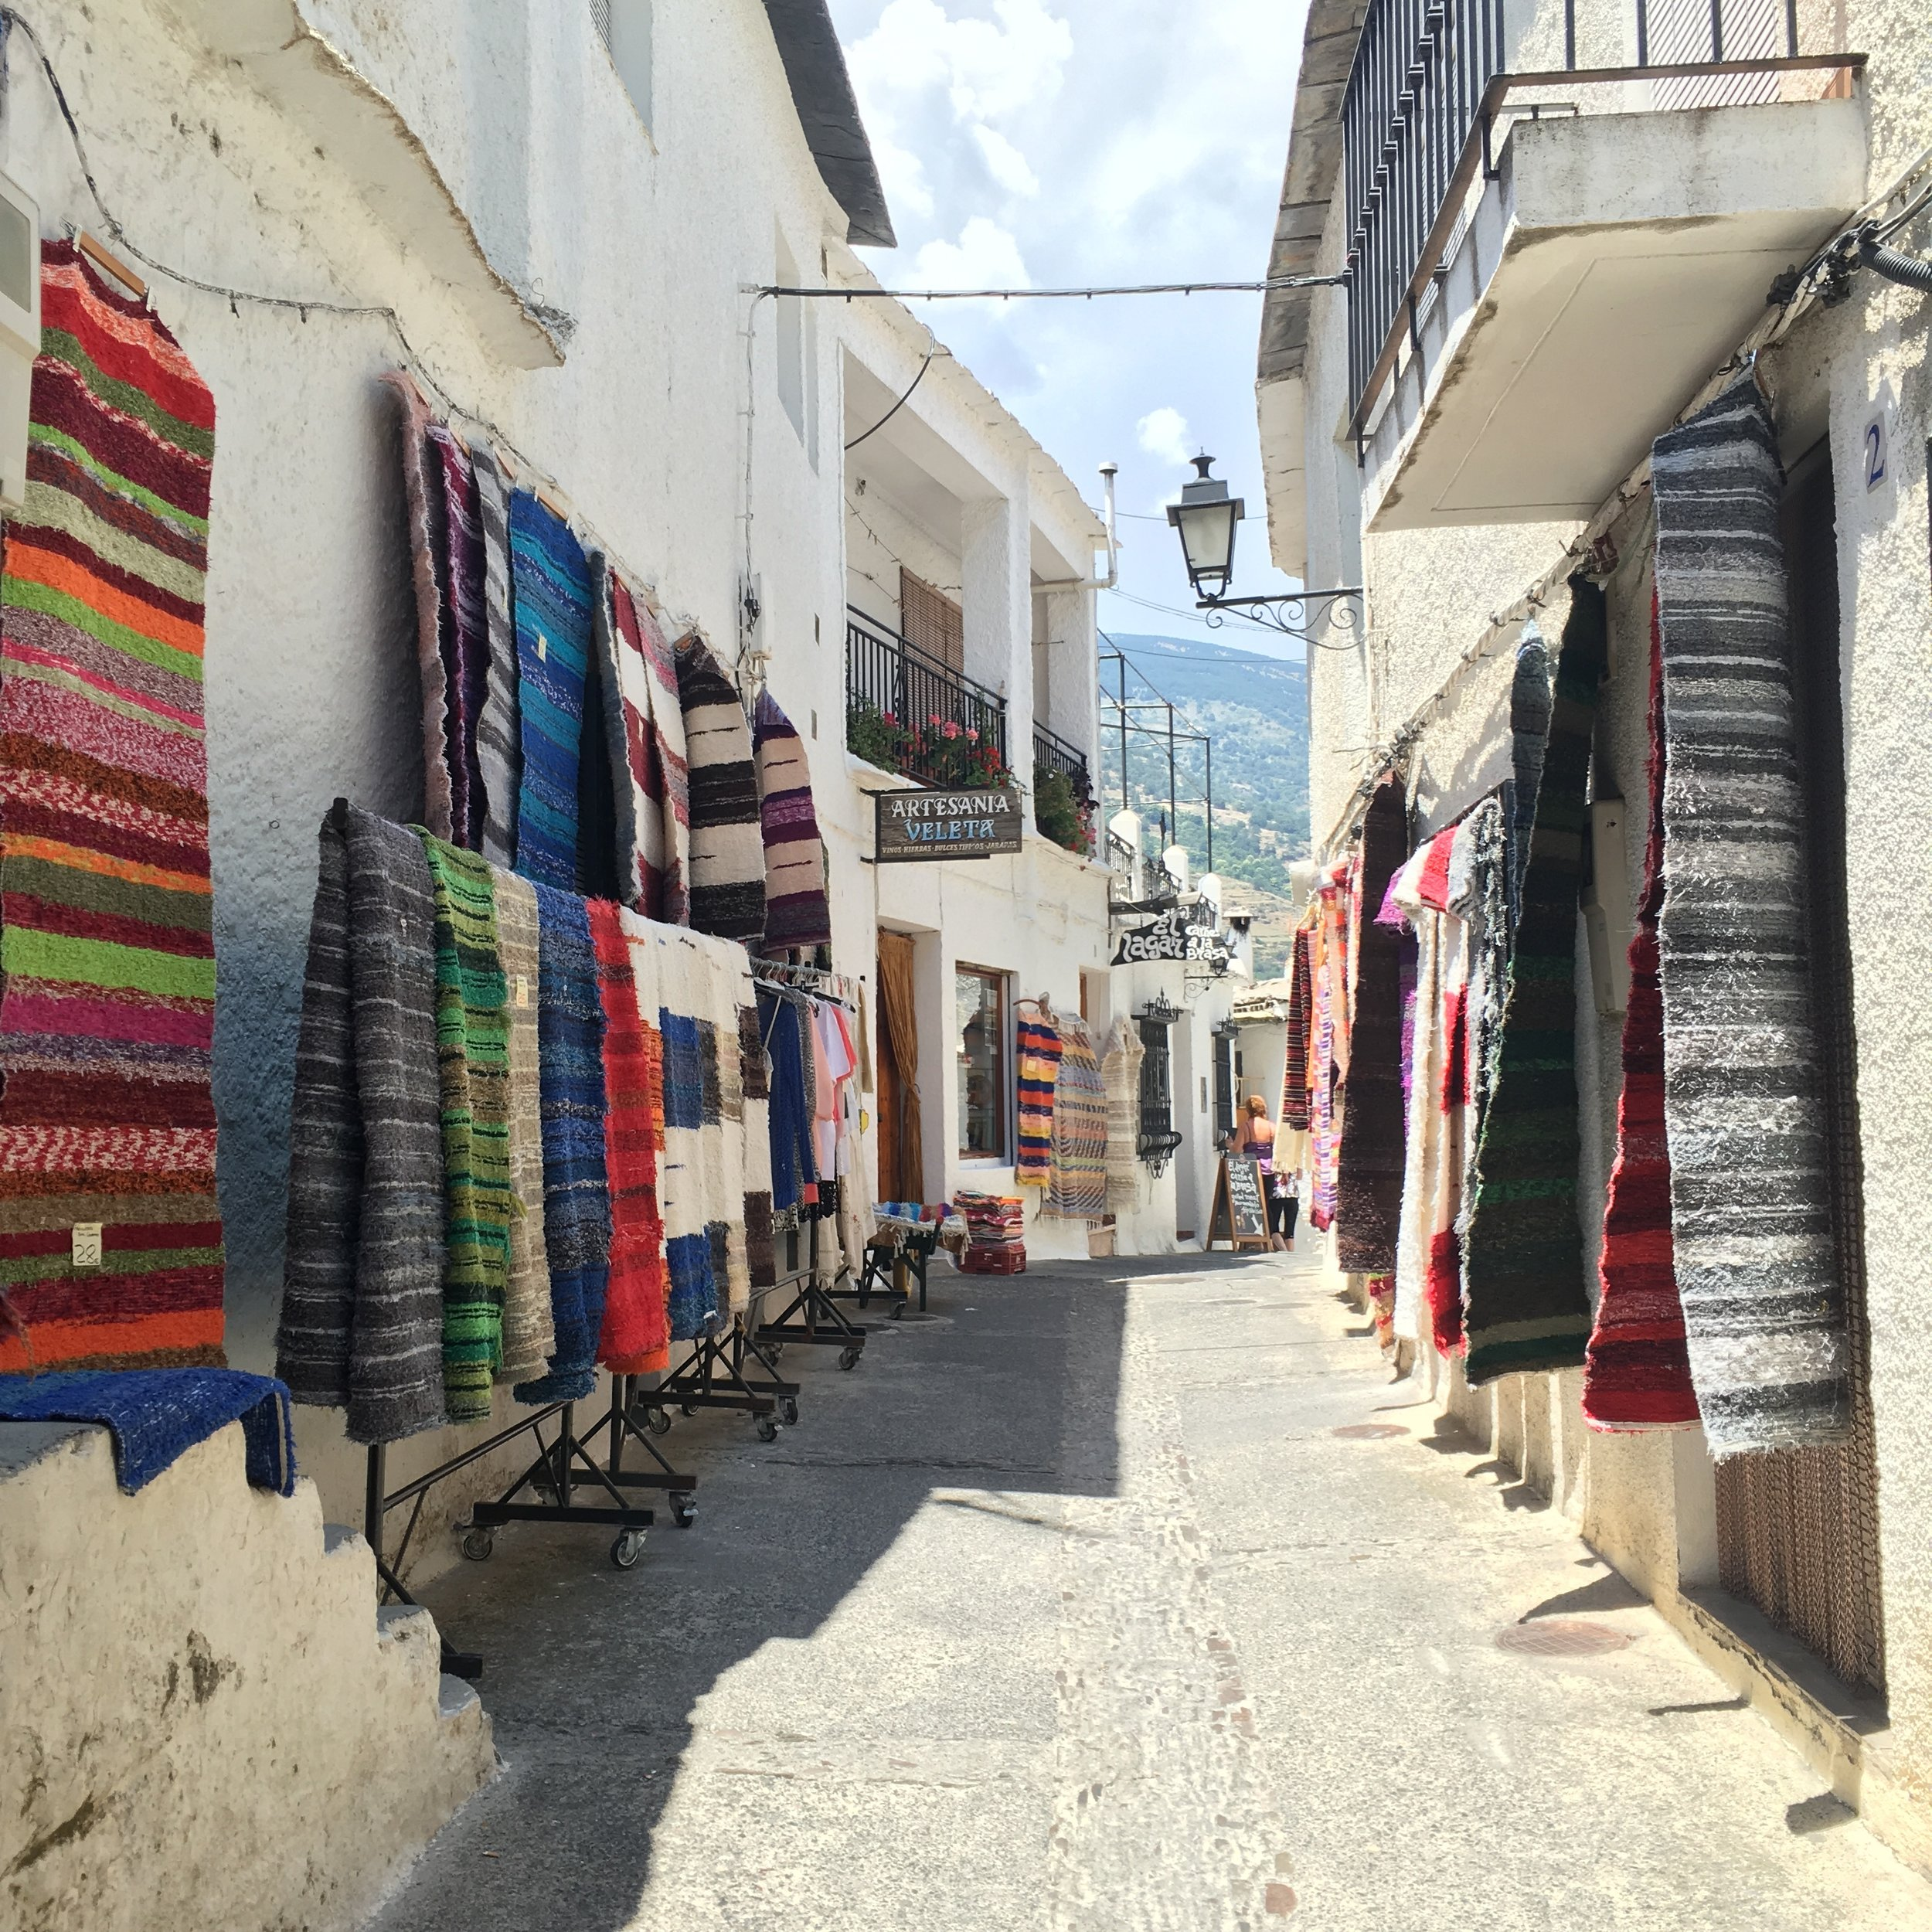 A typical street in the little town of Pampaneira, Spain, which is one of three mountain villages of the Barronco poqueira in the Alpujarras region in the province of Granada.